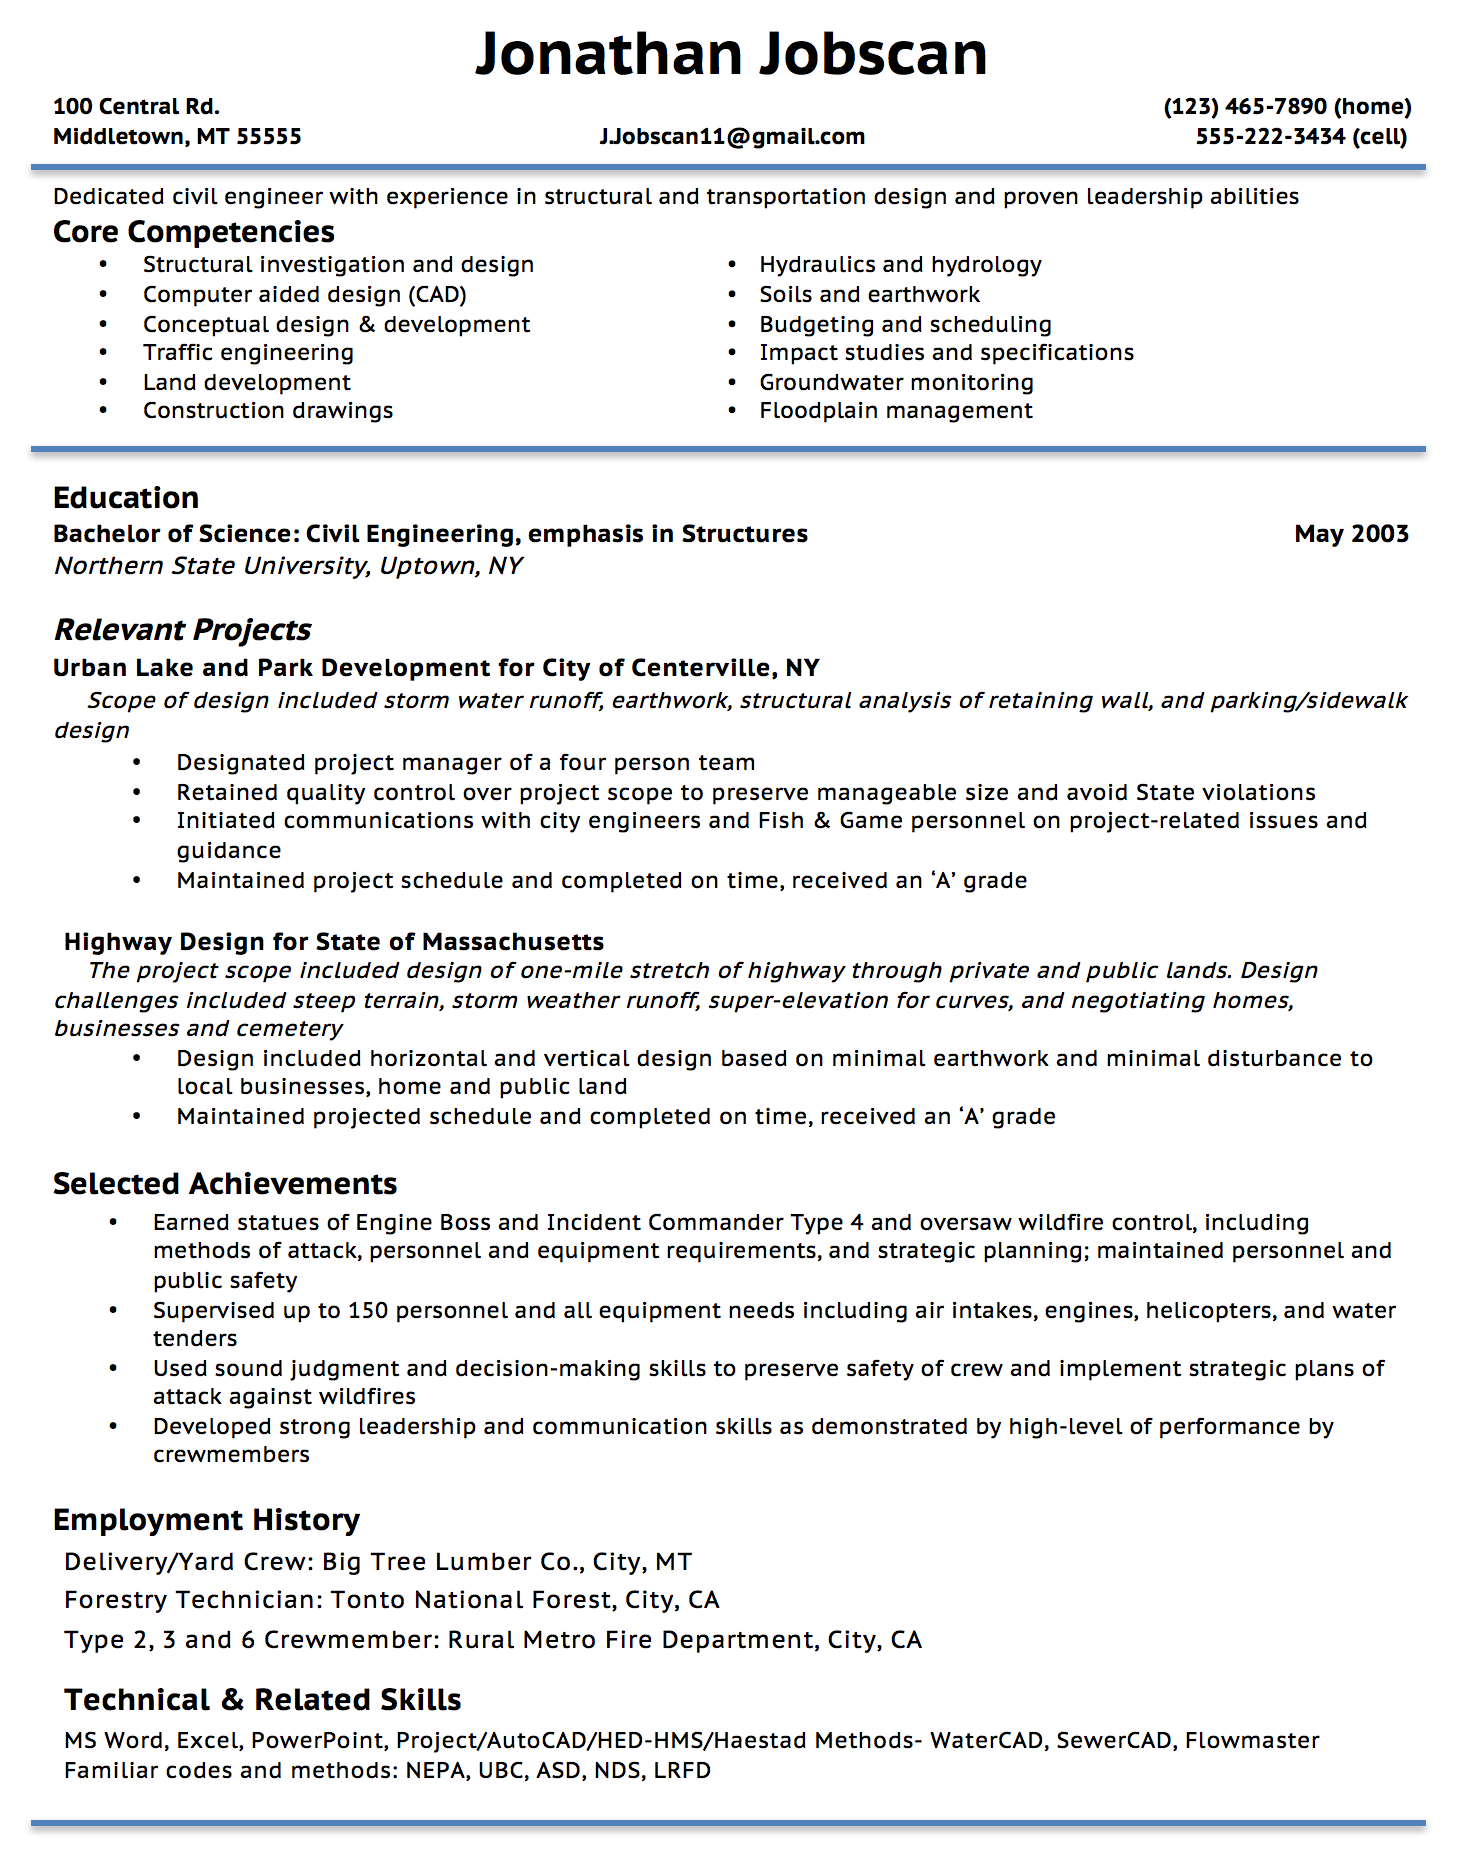 Opposenewapstandardsus  Pleasant Resume Writing Guide  Jobscan With Handsome Example Of A Functional Resume Format With Alluring Help Desk Manager Resume Also Resume Objective Examples Entry Level In Addition Cook Resume Examples And Search Resumes On Indeed As Well As Resume Order Of Jobs Additionally Accounts Receivable Specialist Resume From Jobscanco With Opposenewapstandardsus  Handsome Resume Writing Guide  Jobscan With Alluring Example Of A Functional Resume Format And Pleasant Help Desk Manager Resume Also Resume Objective Examples Entry Level In Addition Cook Resume Examples From Jobscanco